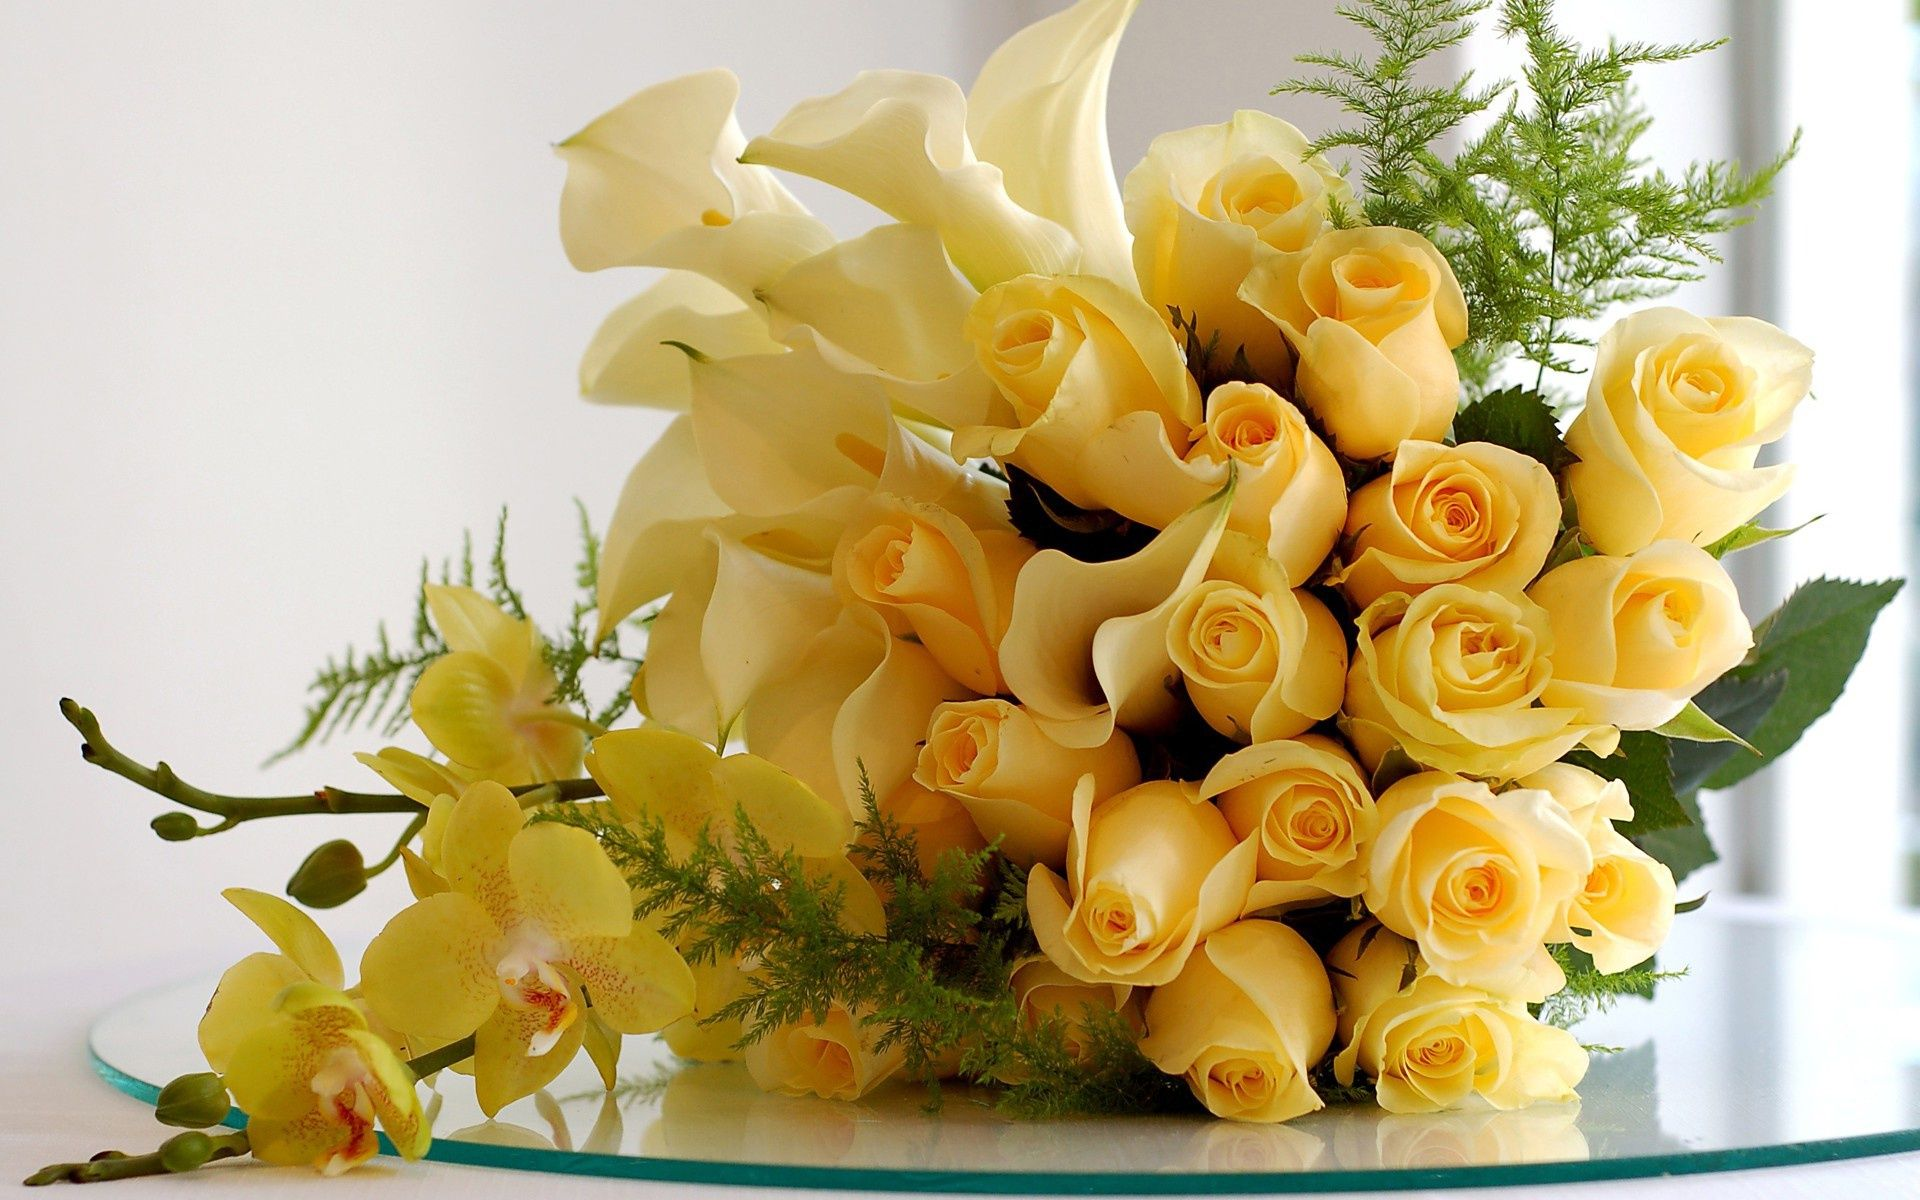 Find Out Yellow Rose Wallpaper On Hdpicorner